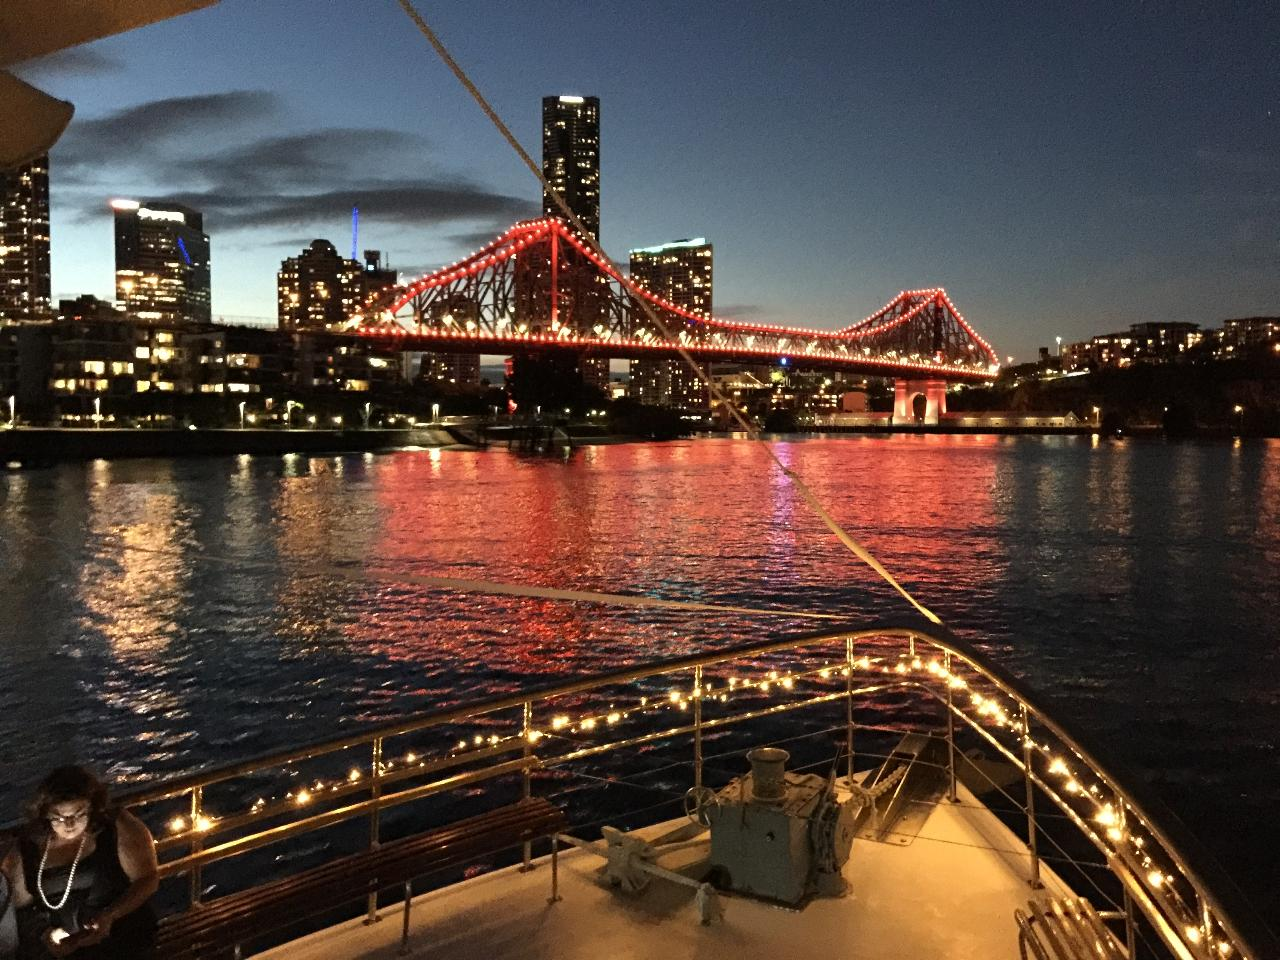 Christmas Parties Friday-Bretts Wharf Plaza departure